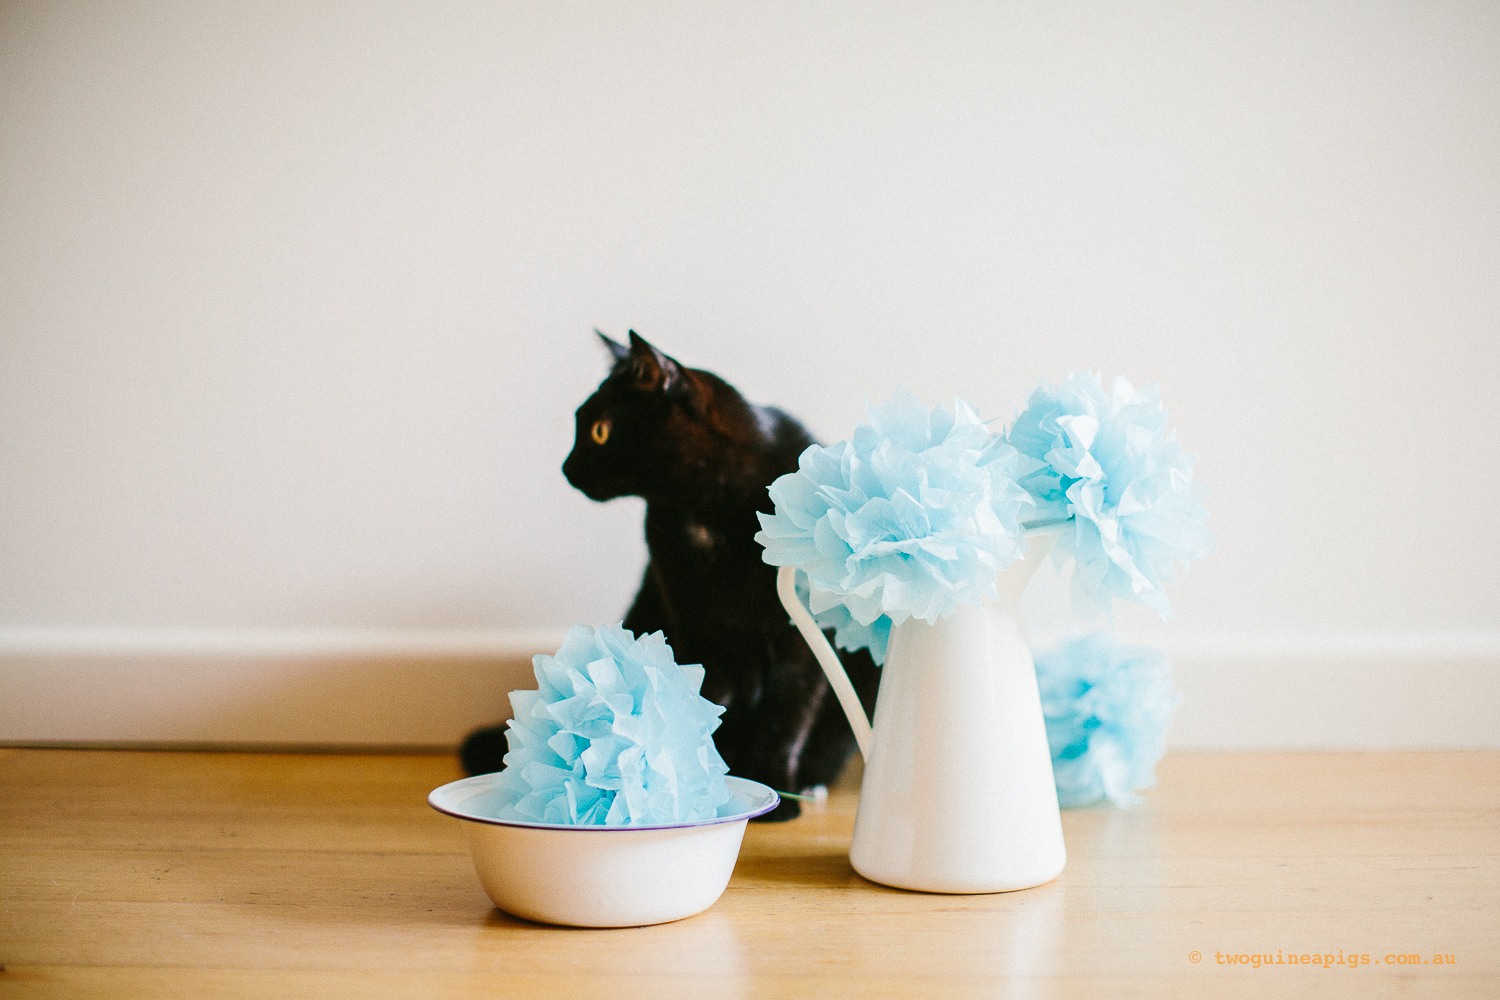 twoguineapigs_pet_photography_ruby_slipper_cat_floral_series_TEST_1500-38.jpg